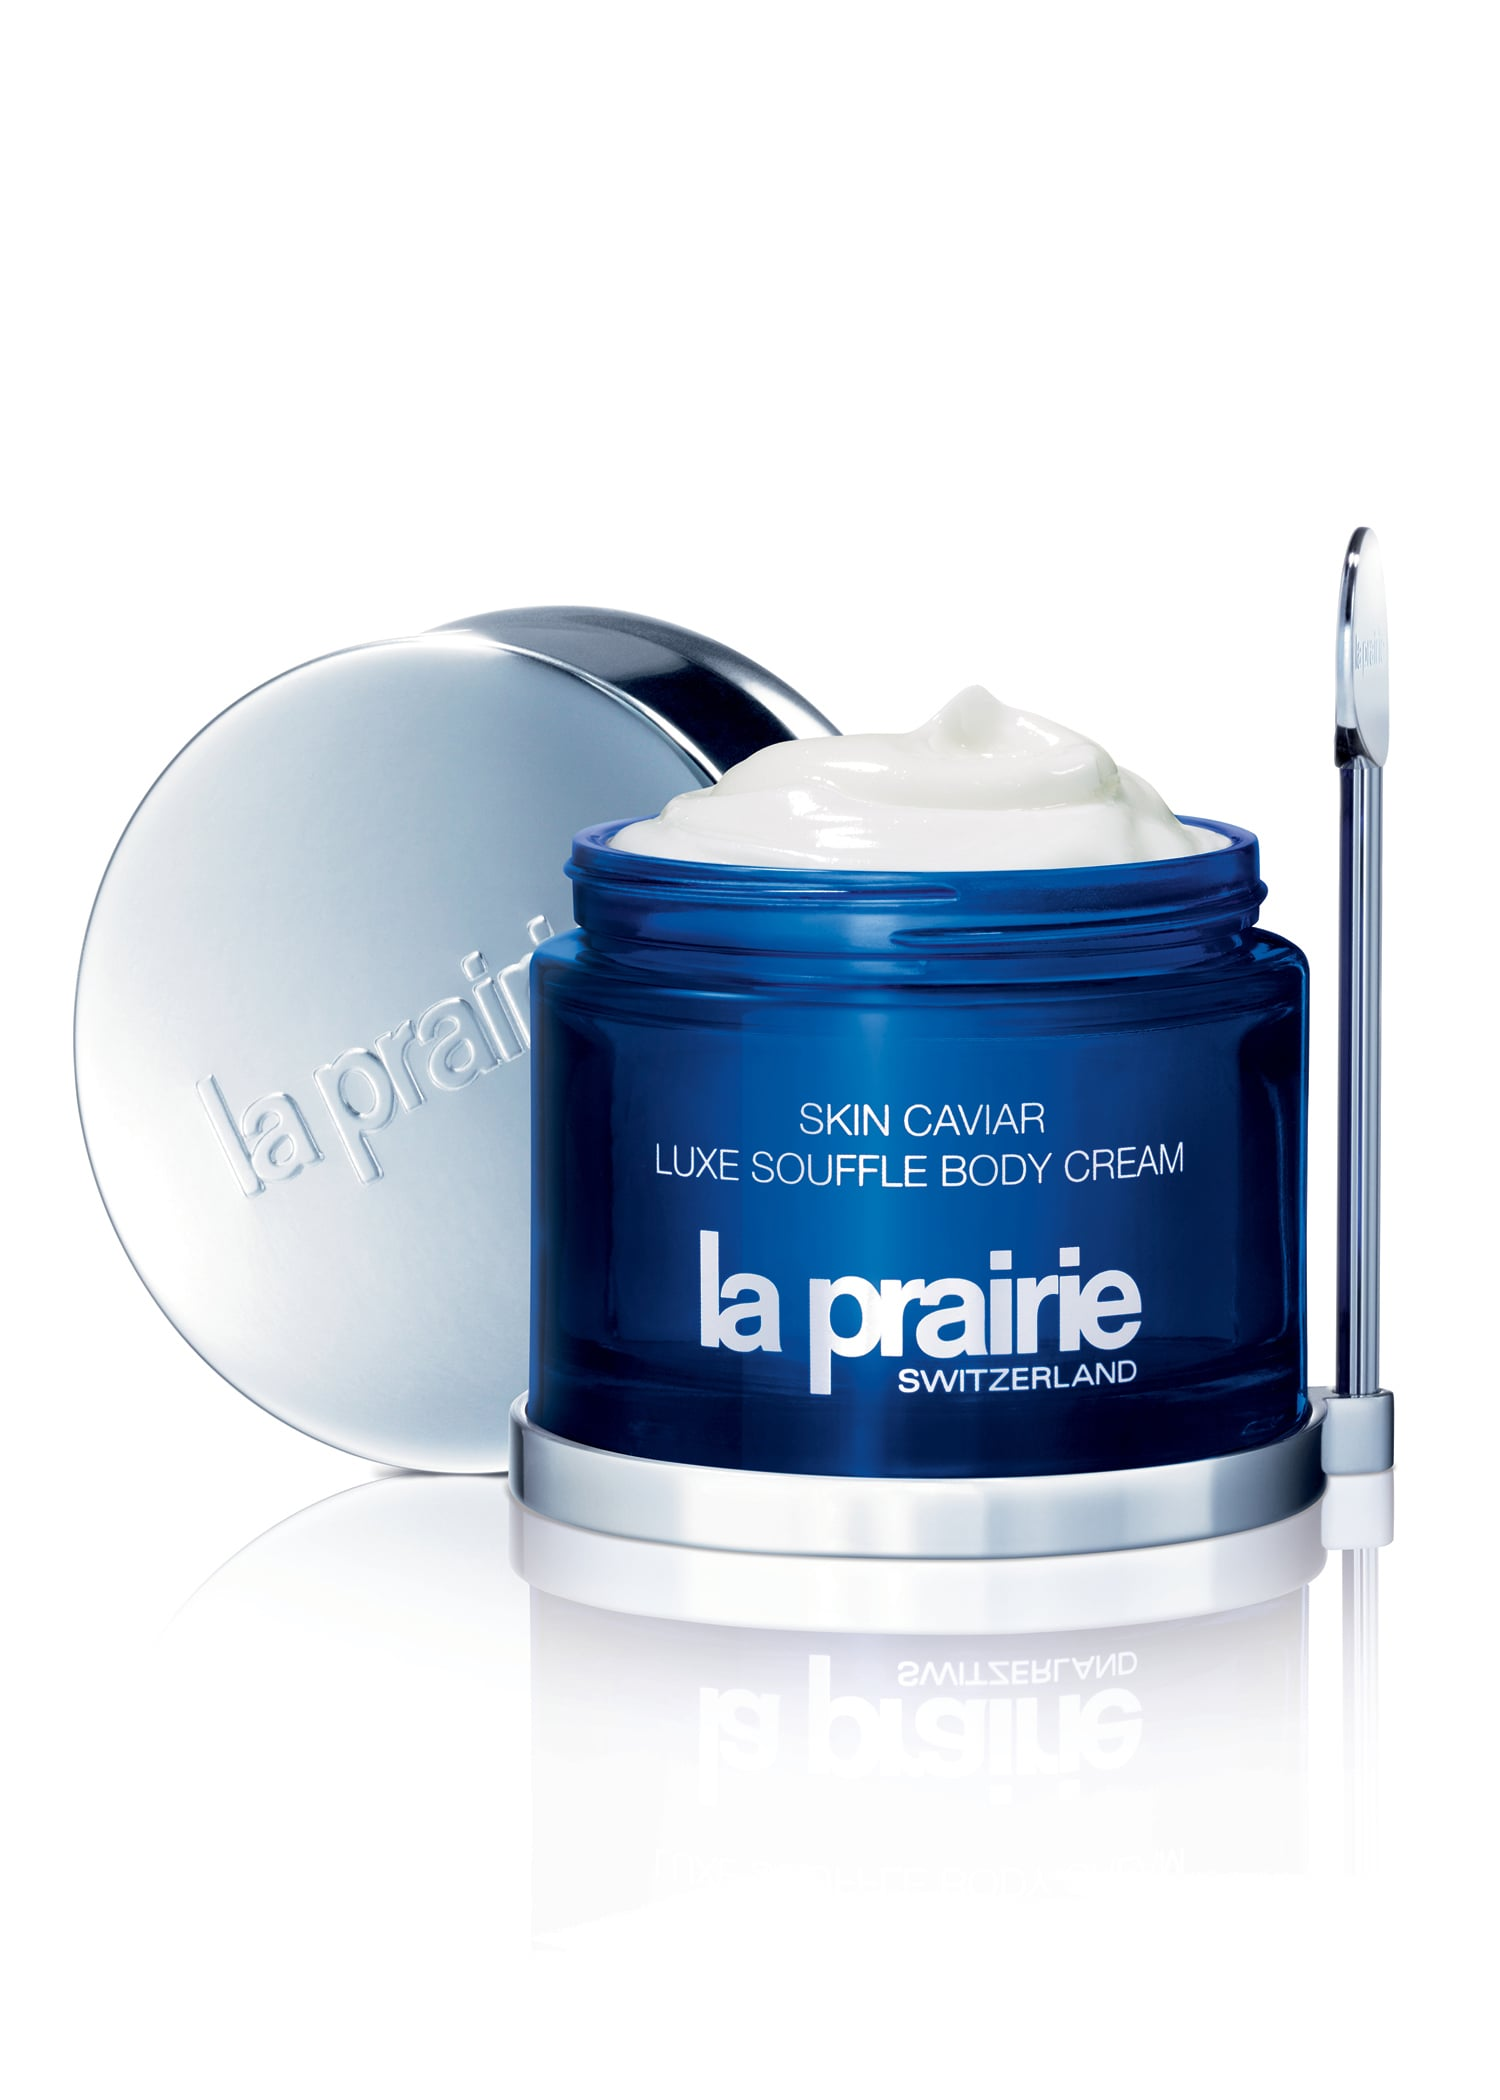 Imagine if you could get a facial while you slept that made your skin look brighter, tighter, and more hydrated that only cost $12? La Prairie's innovative overnight treatment does just that, and all with its signature delicious scent and elegant packaging (you use the brush to sweep on the treatment). And while $300 might seem like a lot to spend, with 25 uses in the tub, the Skin Caviar Luxe Sleep Mask (available in October) is totally worth it. — MLG